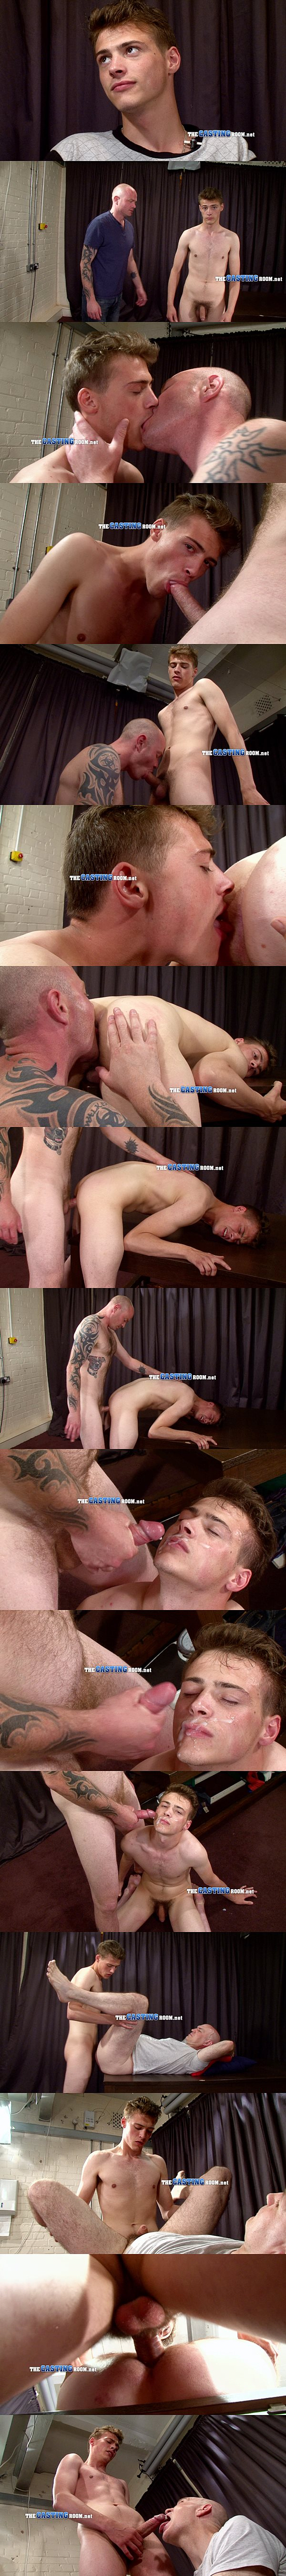 Dave fucks handsome hetero Will's tight virgin ass before he dumps his big load onto Will's face at Thecastingroom 02